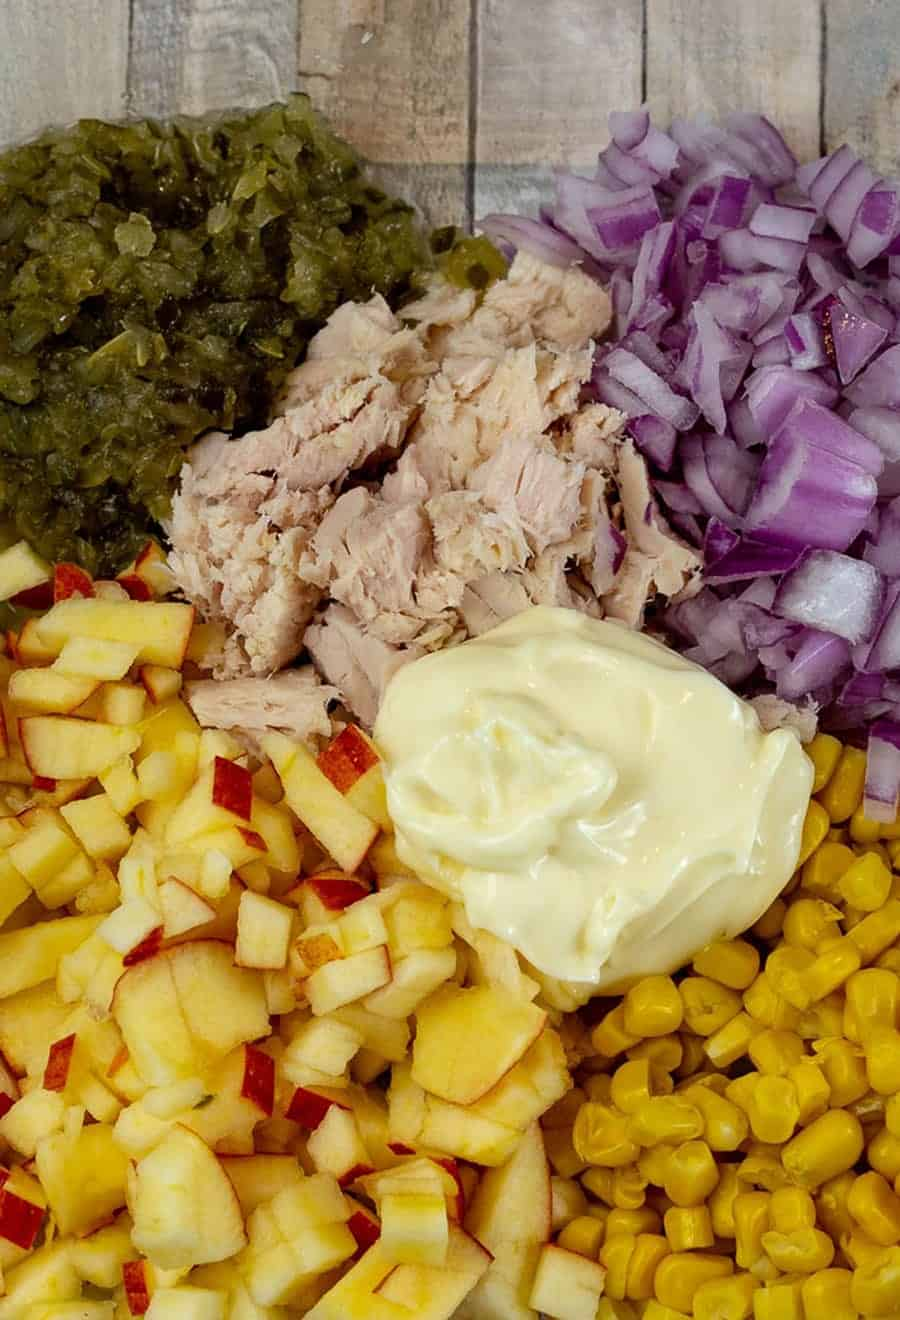 Tuna Salad Recipe that's only got 6 ingredients. Canned Tuna, sweet corn, s pickle relish, onion, apple, and mayo